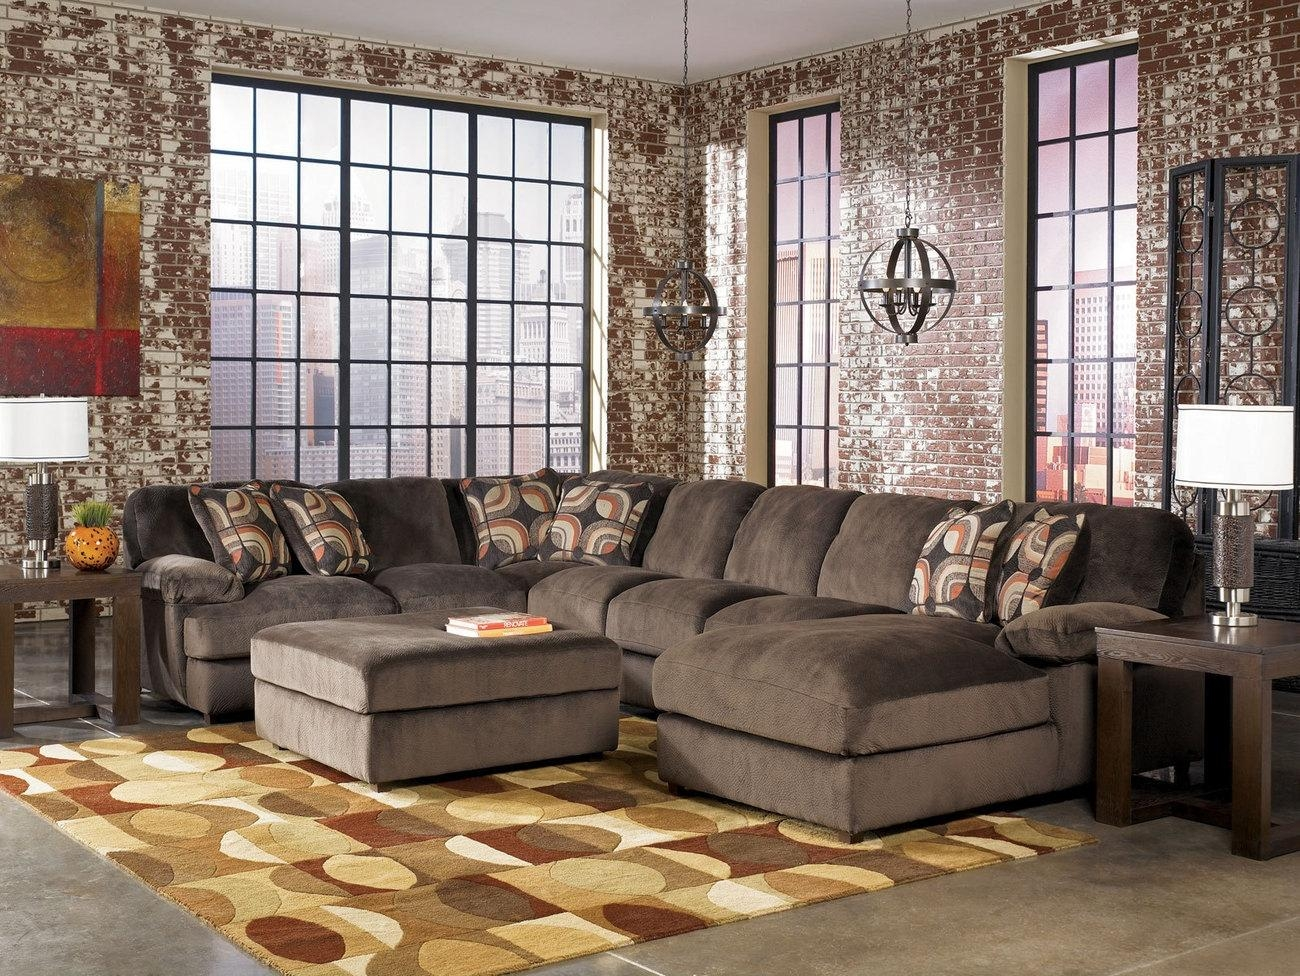 Sofas Center : Popular Oversized Sectionals Sofas About Remodel Throughout Sectional With Oversized Ottoman (View 18 of 20)